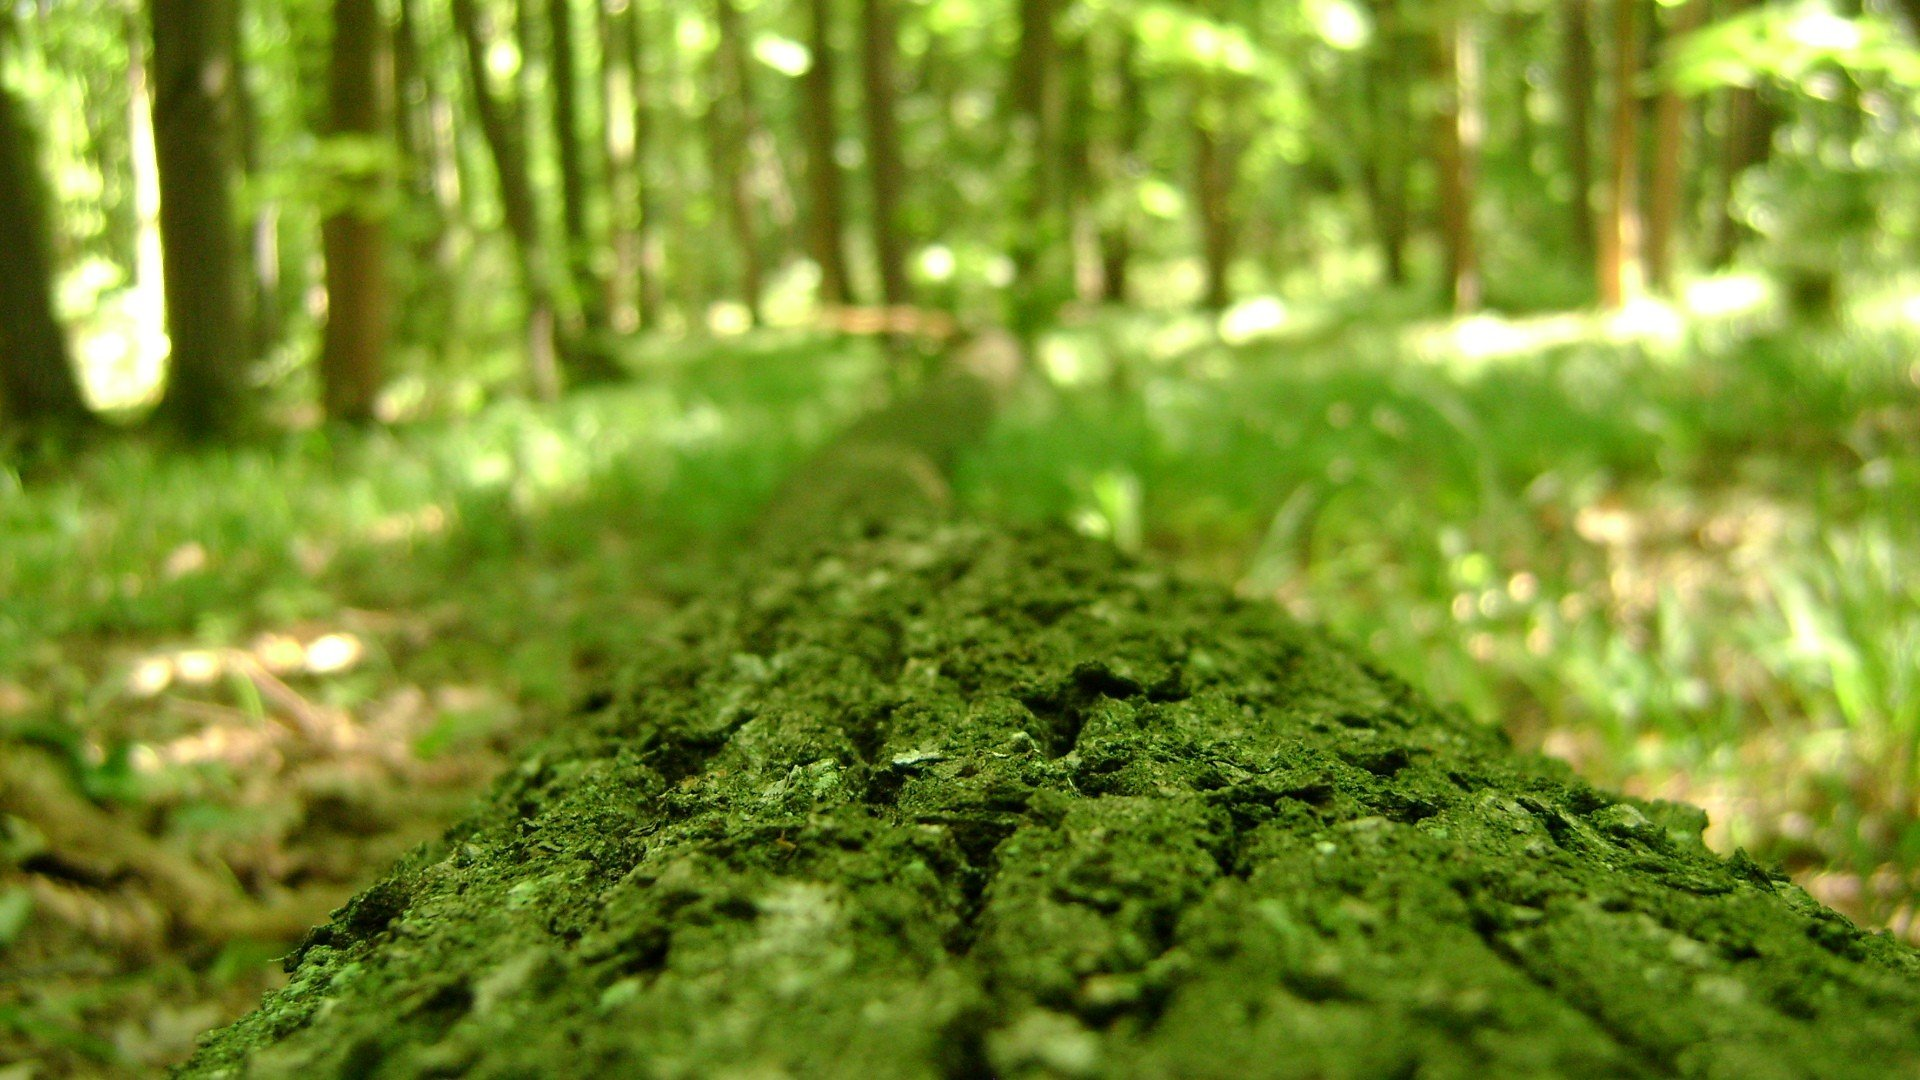 download hd 1920x1080 forest pc background id 473603 for free